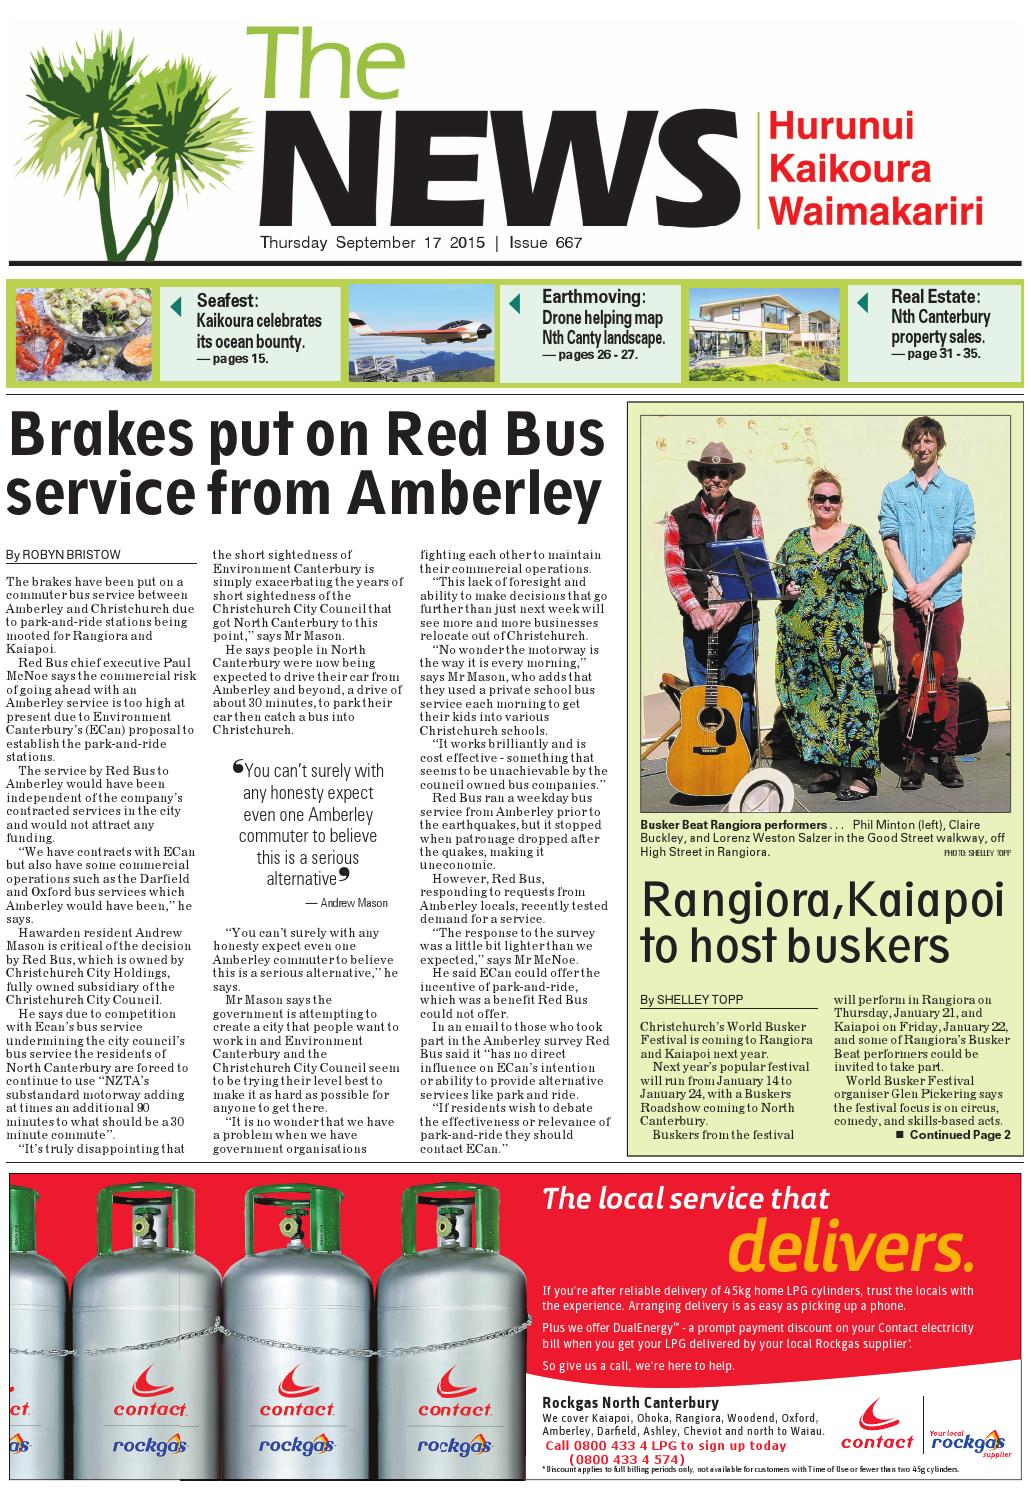 The News North Canterbury 17 09 15 By Local Newspapers Issuu Audio Scheme Cap20 In Two Amplifier Wiring Plot Tidy All